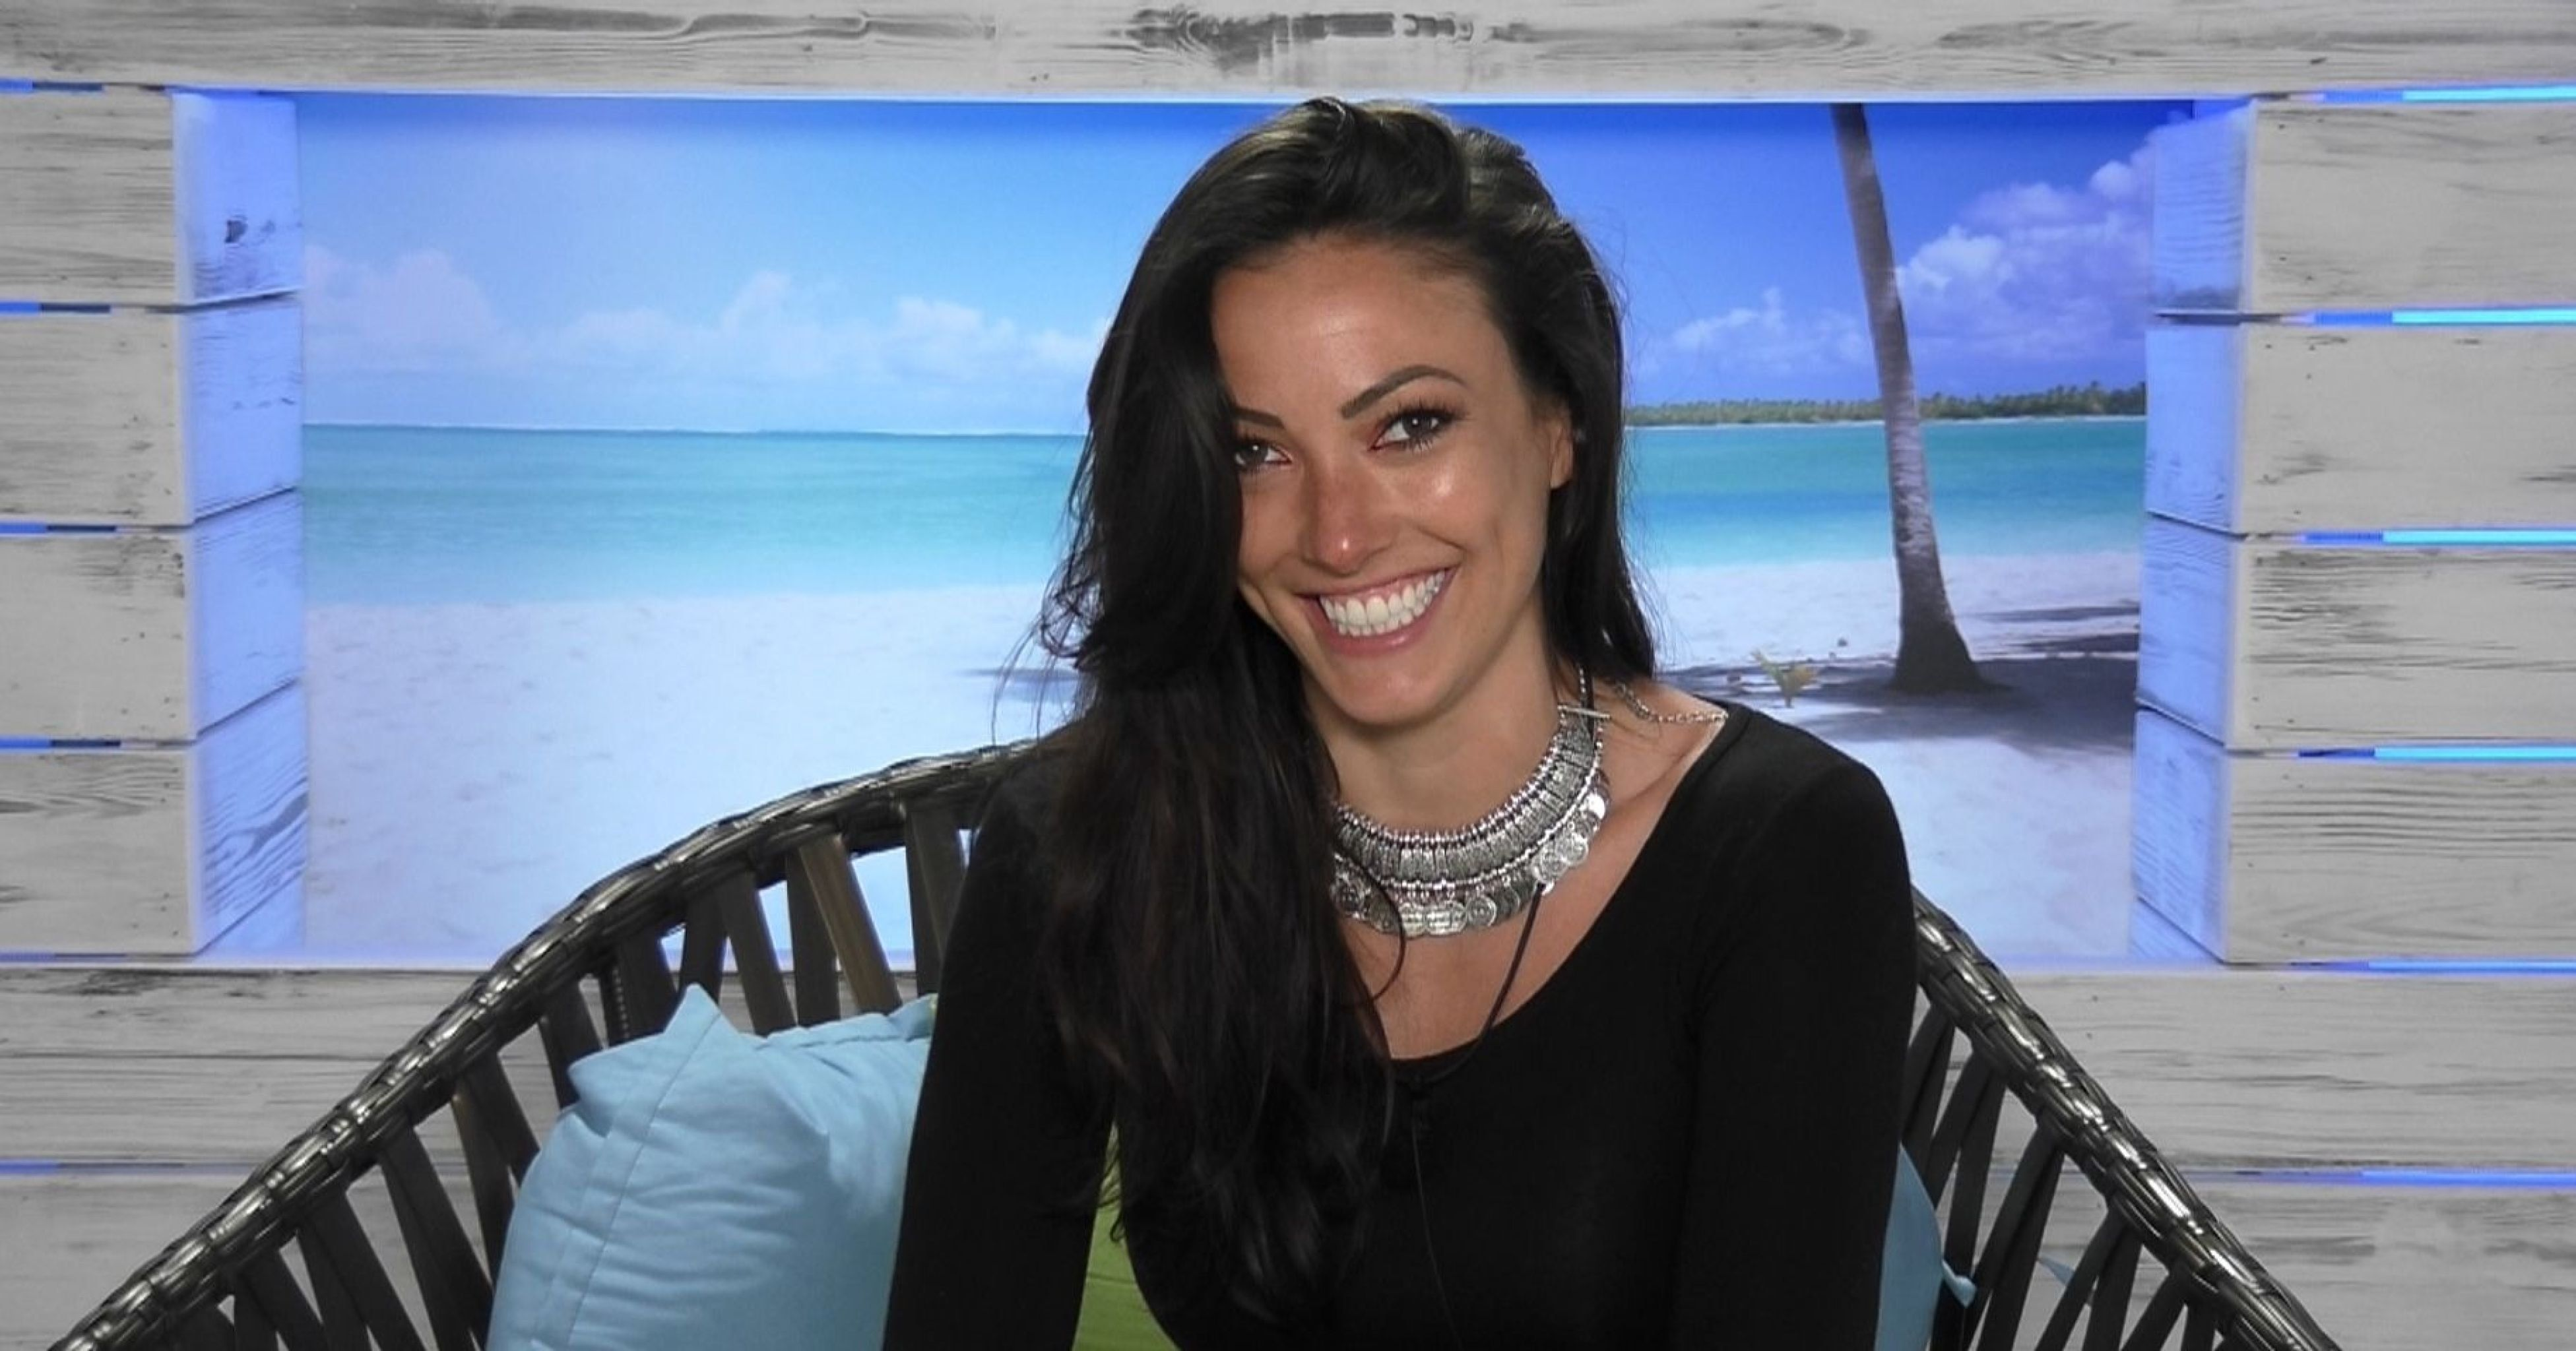 'Love Island' Stars Pay Tribute To Sophie Gradon